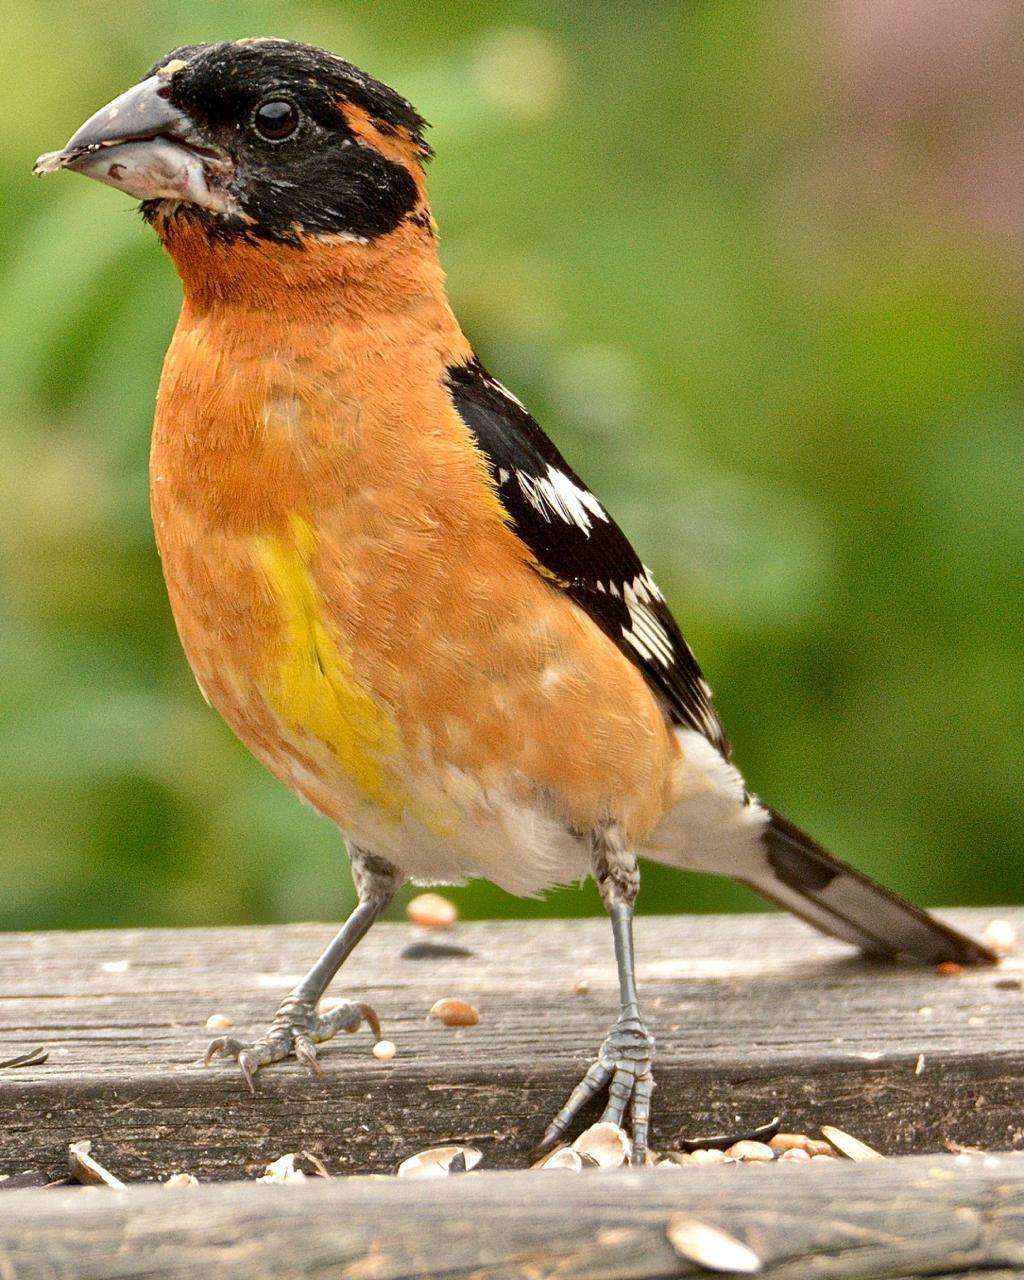 Black-headed Grosbeak Photo by Brian Avent